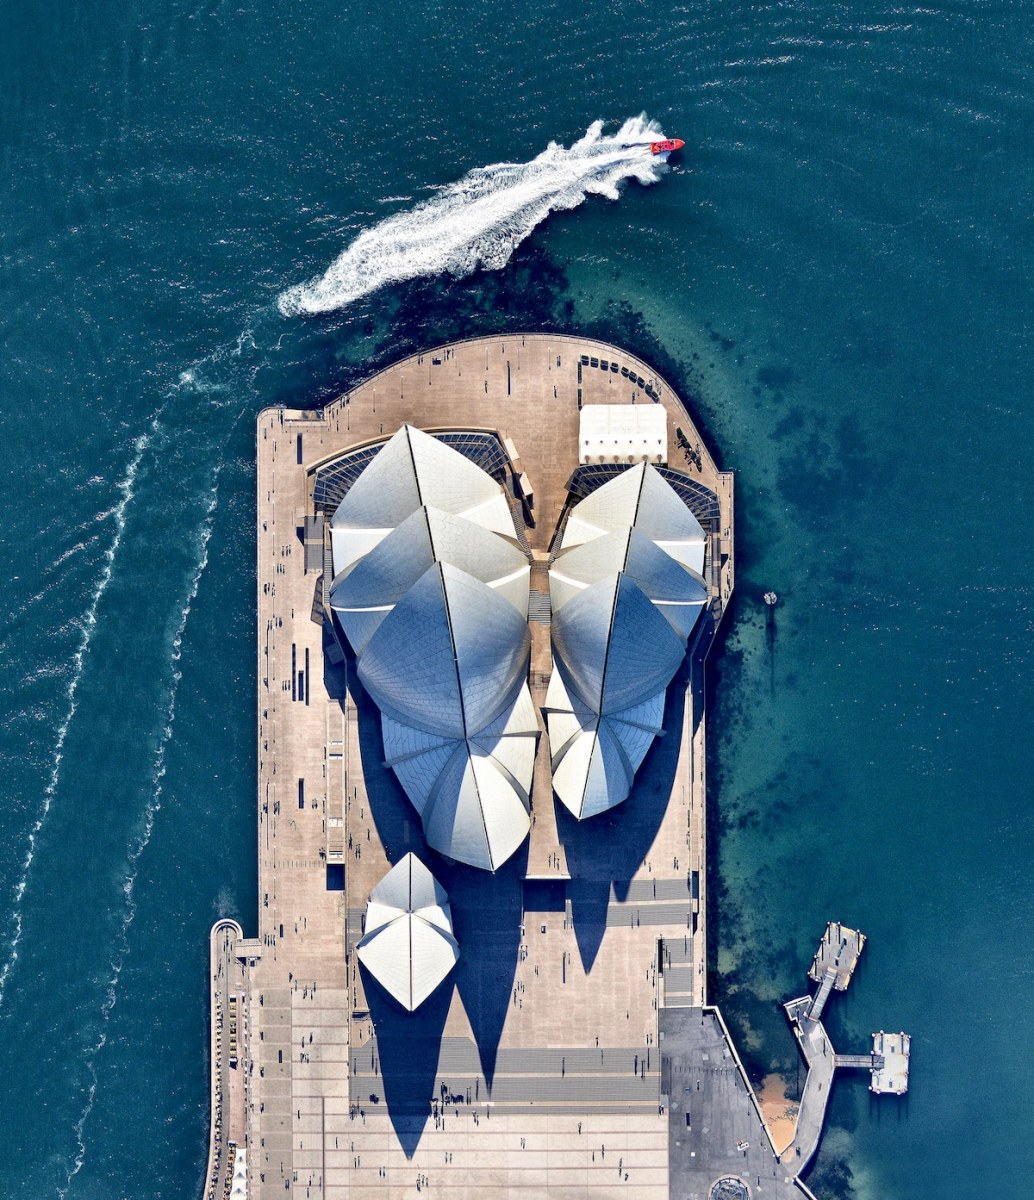 Get-a-Birds-Eye-View-of-UNESCO-World-Heritage-Sites-Across-the-Globe-8